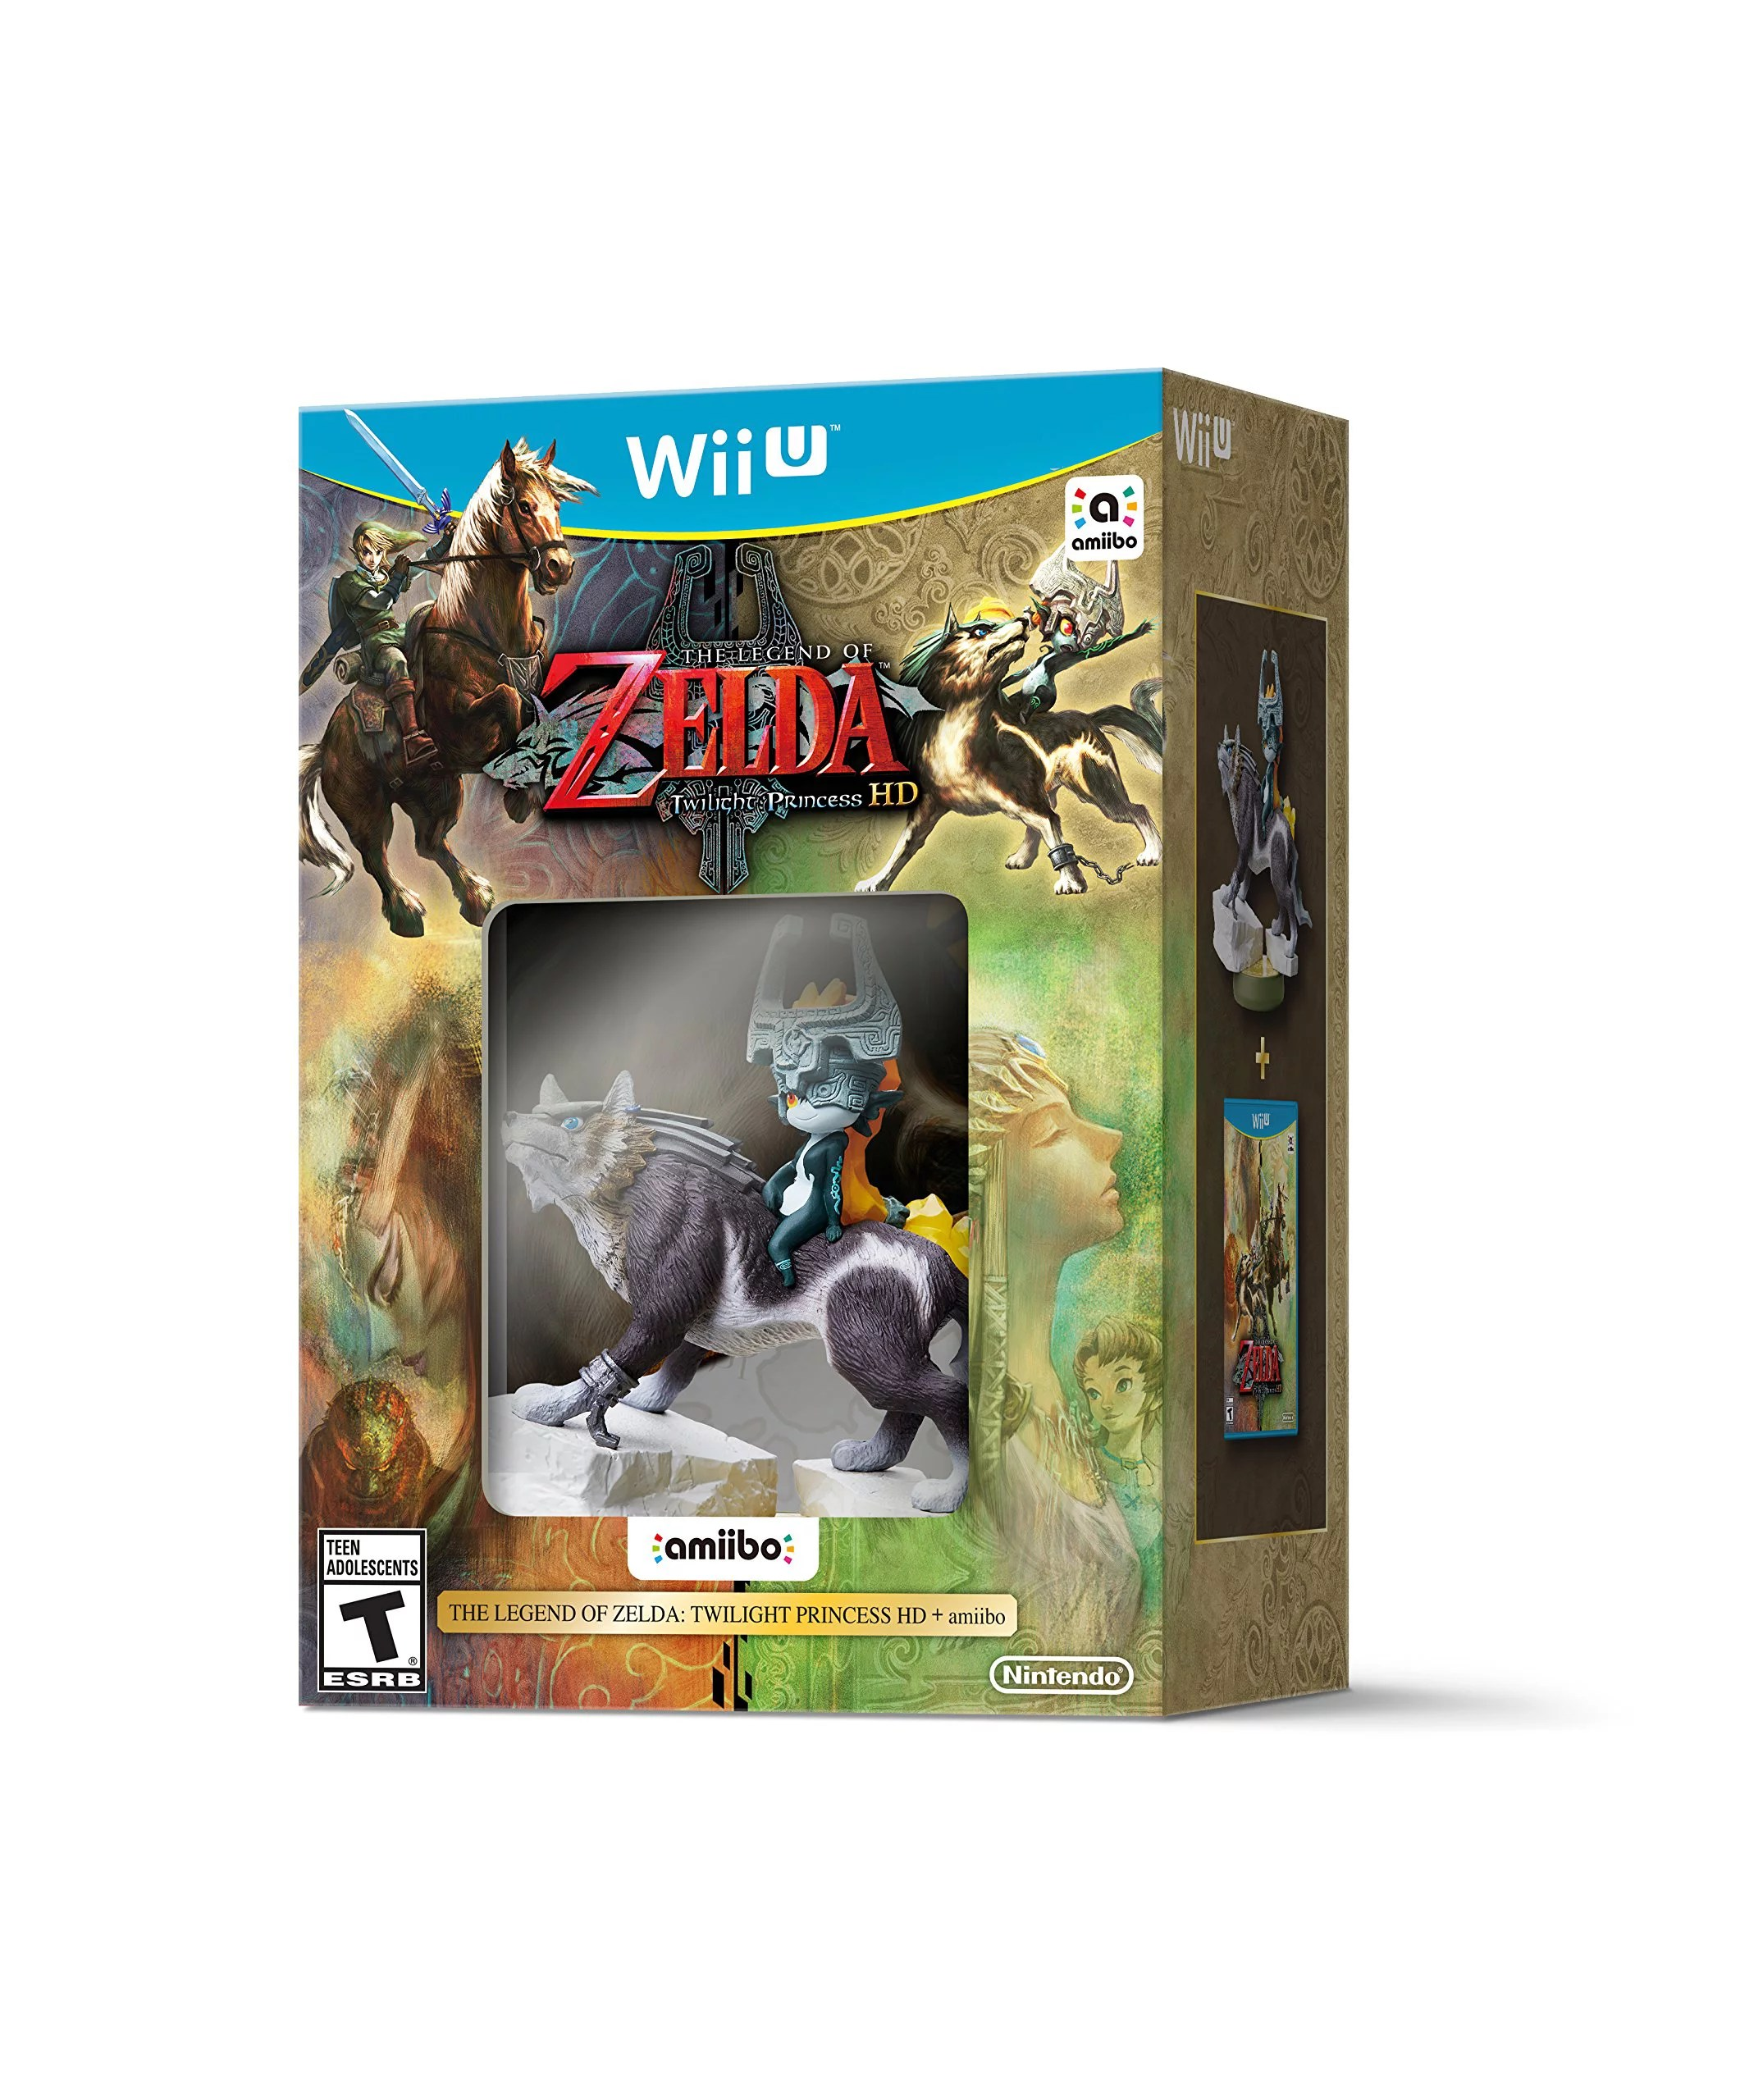 The Legend of Zelda  Twilight Princess HD  Nintendo  Nintendo Wii U     The Legend of Zelda  Twilight Princess HD  Nintendo  Nintendo Wii U   045496903763   Walmart com